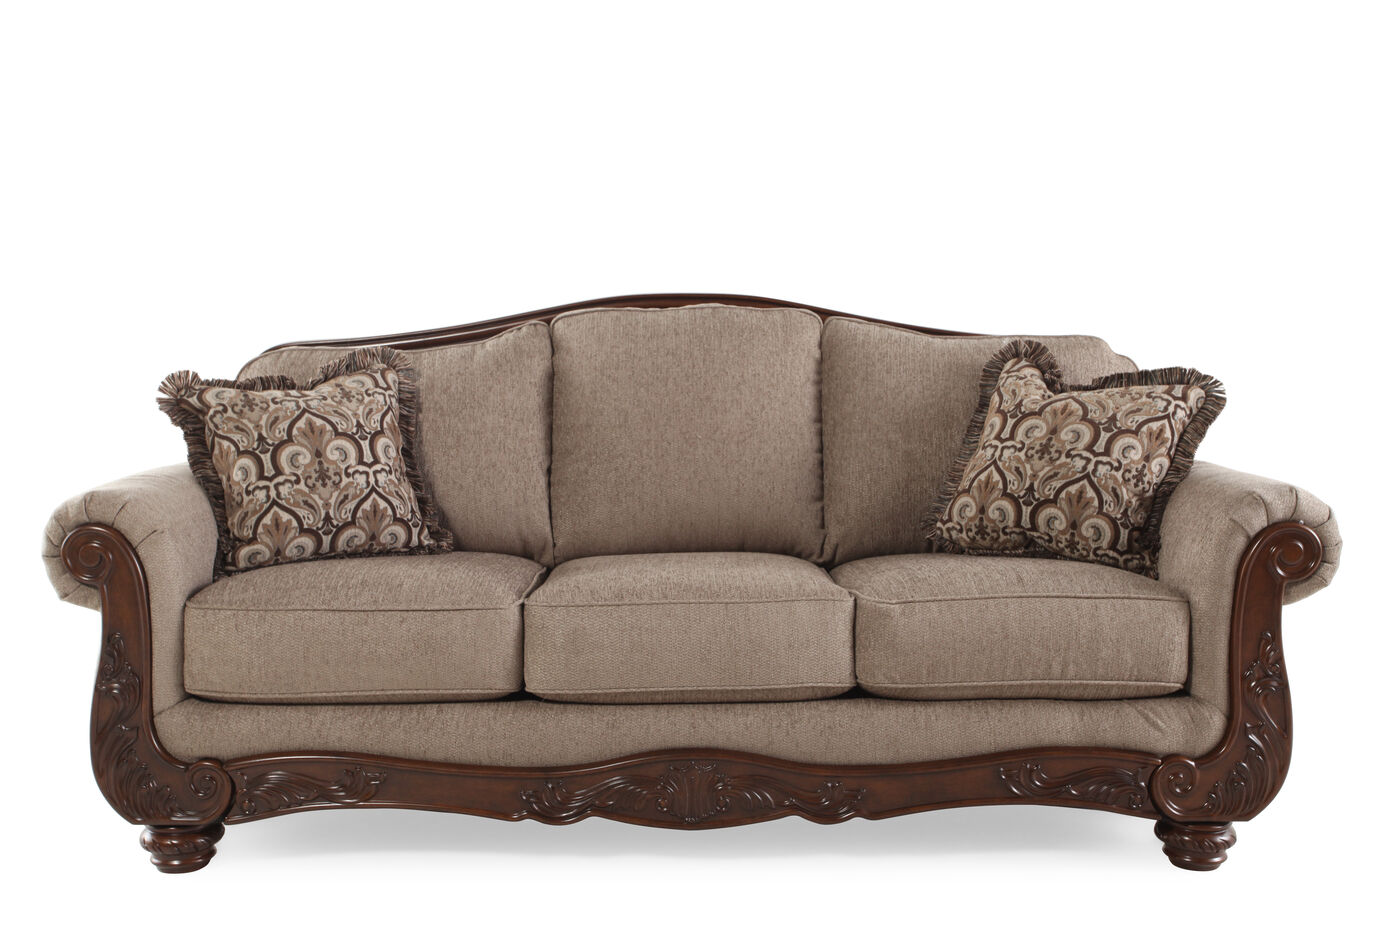 Traditional Rolled Arm Sofa Awesome Back Leather Ethan Allen Bennett Sleeper Sectional